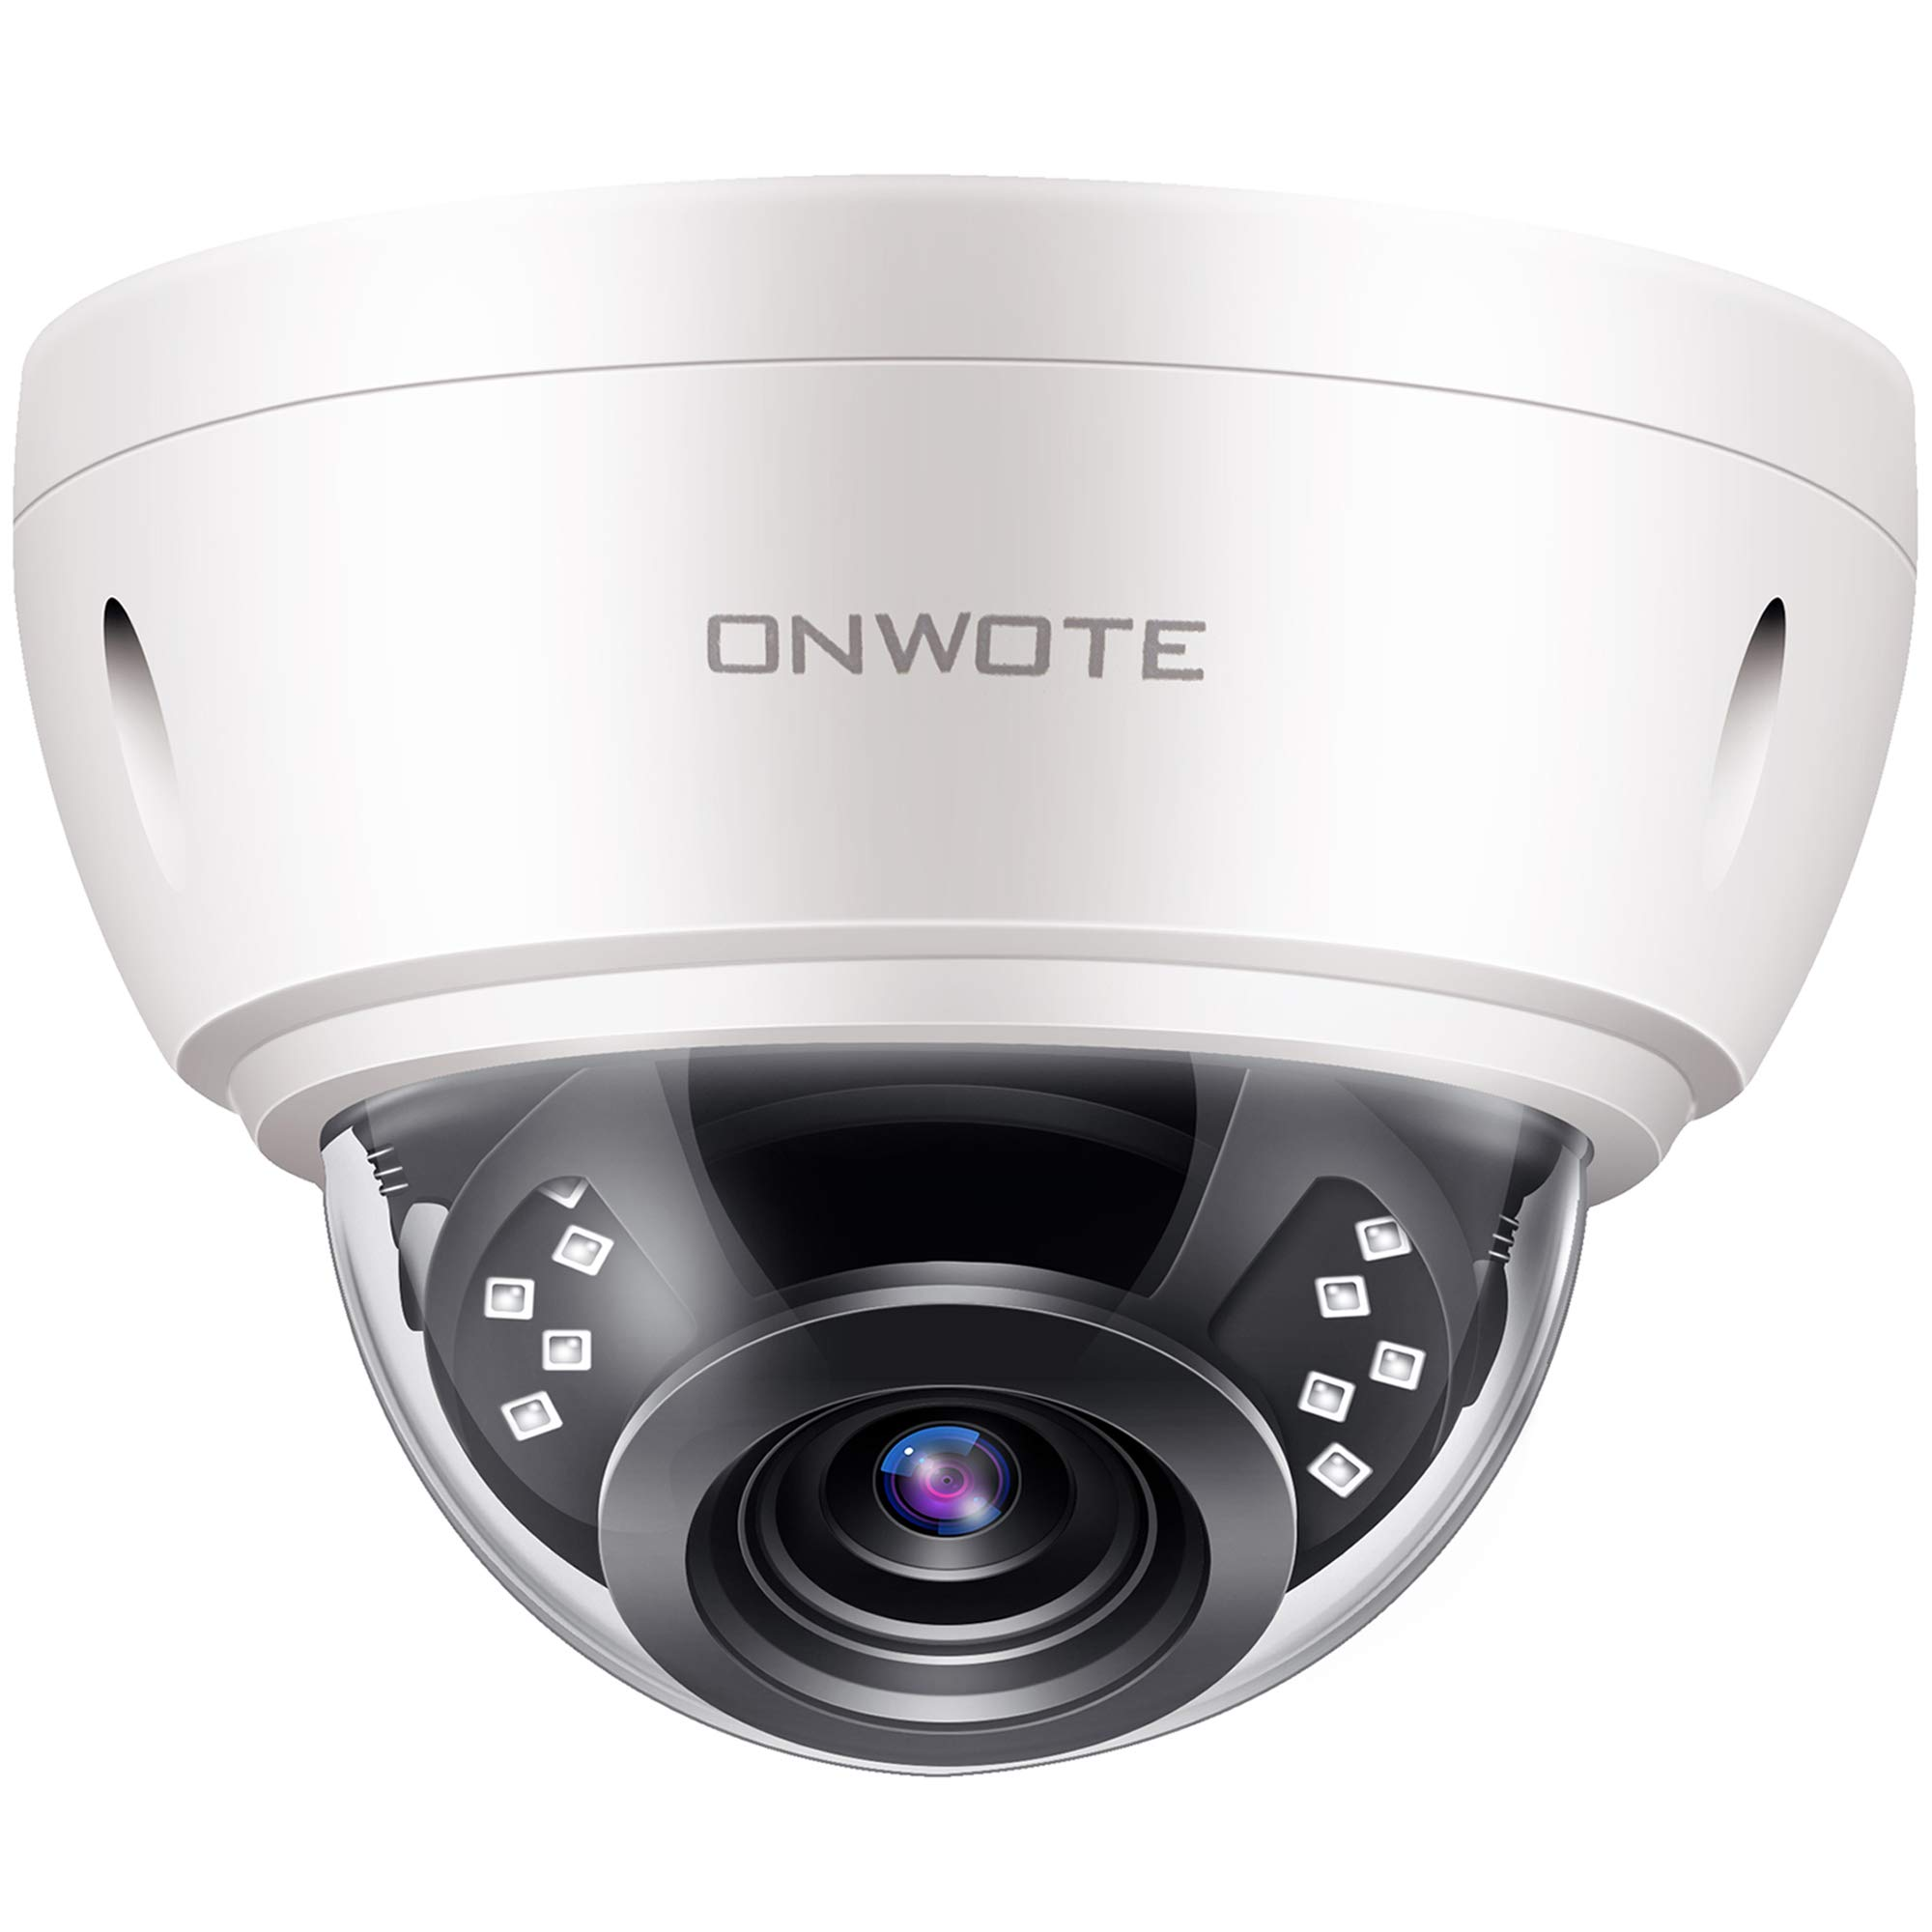 【Audio】 ONWOTE 5MP HD IP POE Security Camera Outdoor Dome Onvif, 5 Megapixels 2592x 1944P Super HD Vandalproof Camera, 100ft IR, 90° Viewing Angle, IP66 Waterproof, Remote Access, Motion Alert